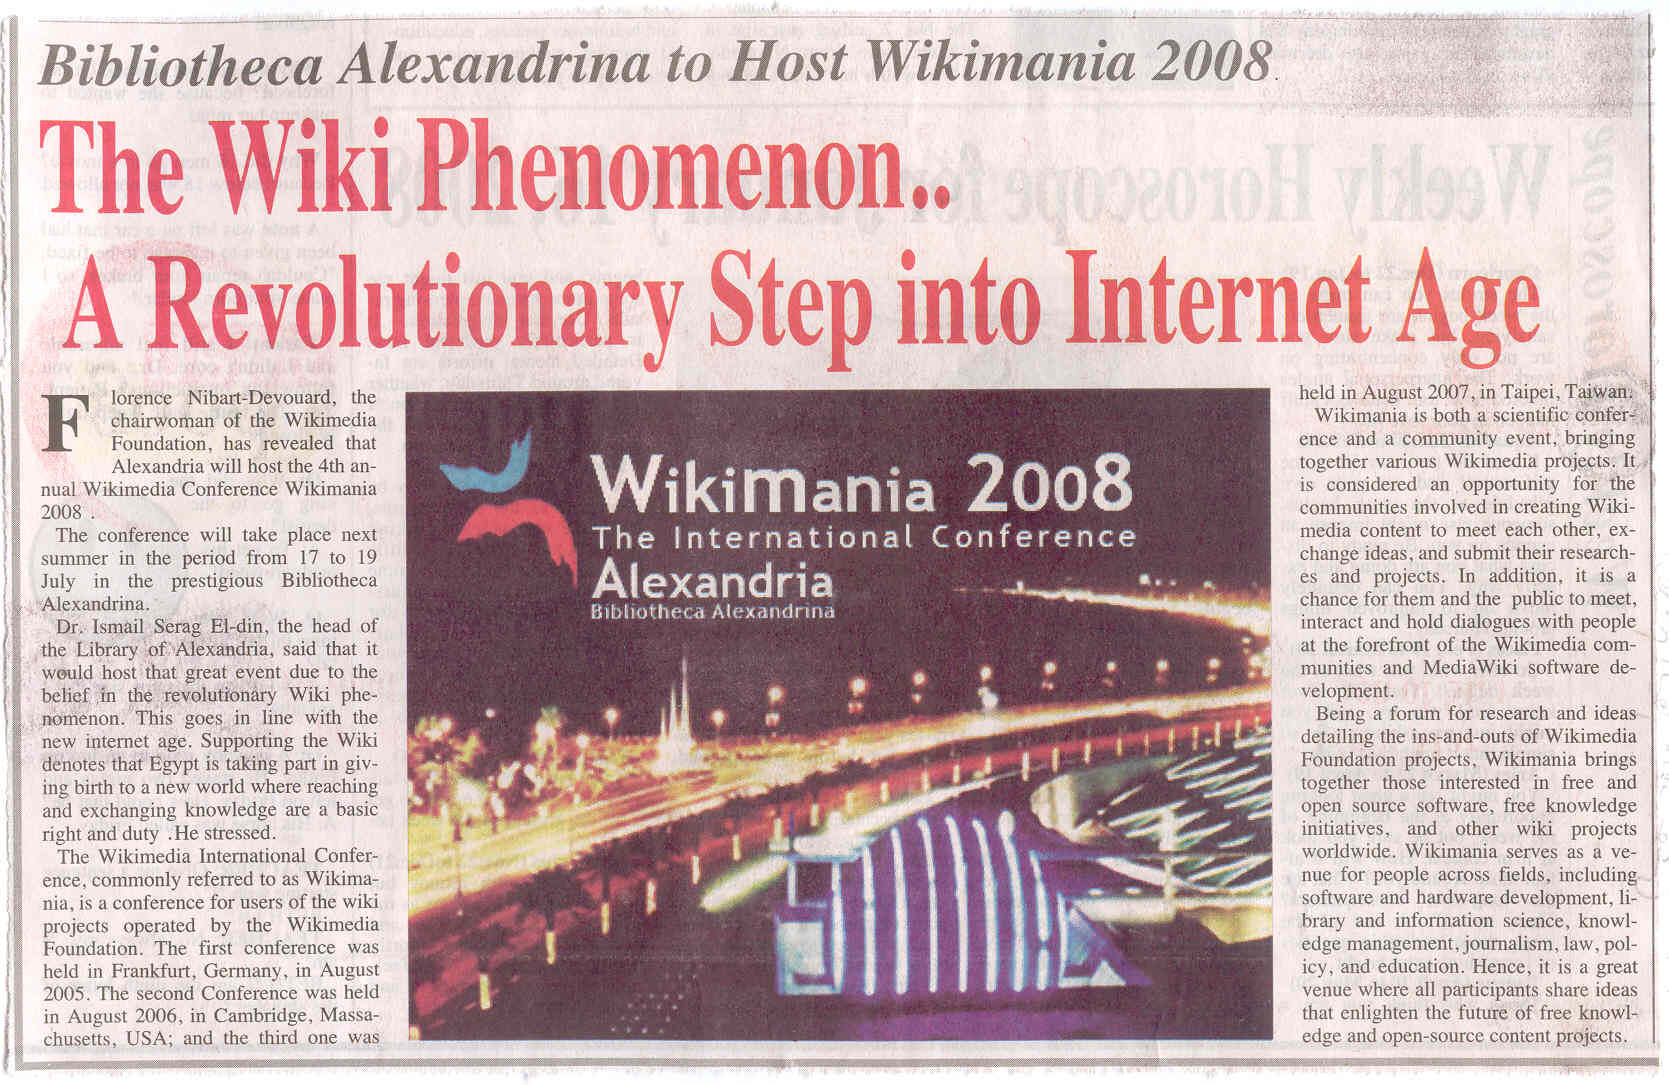 bibliotheca alexandrina to host wikimania